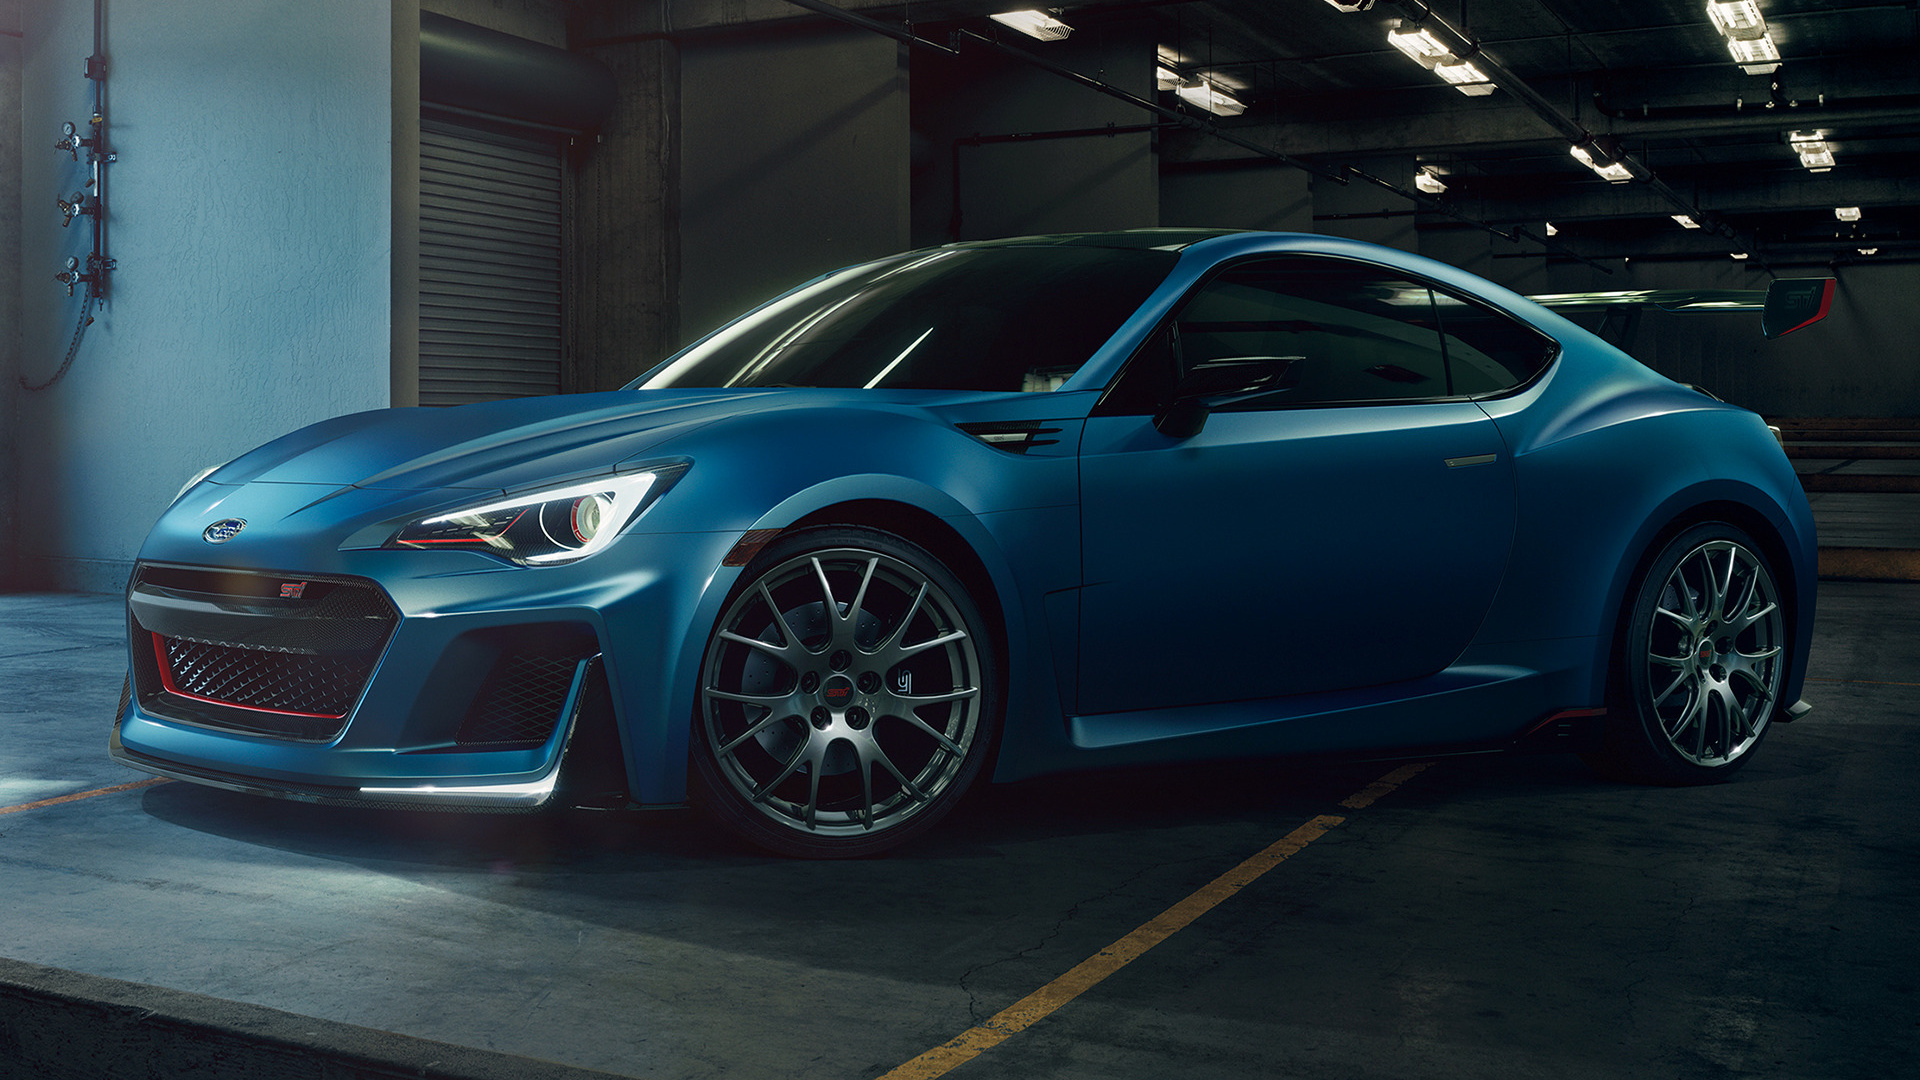 Subaru Brz Sti Performance Concept 2015 Wallpapers And